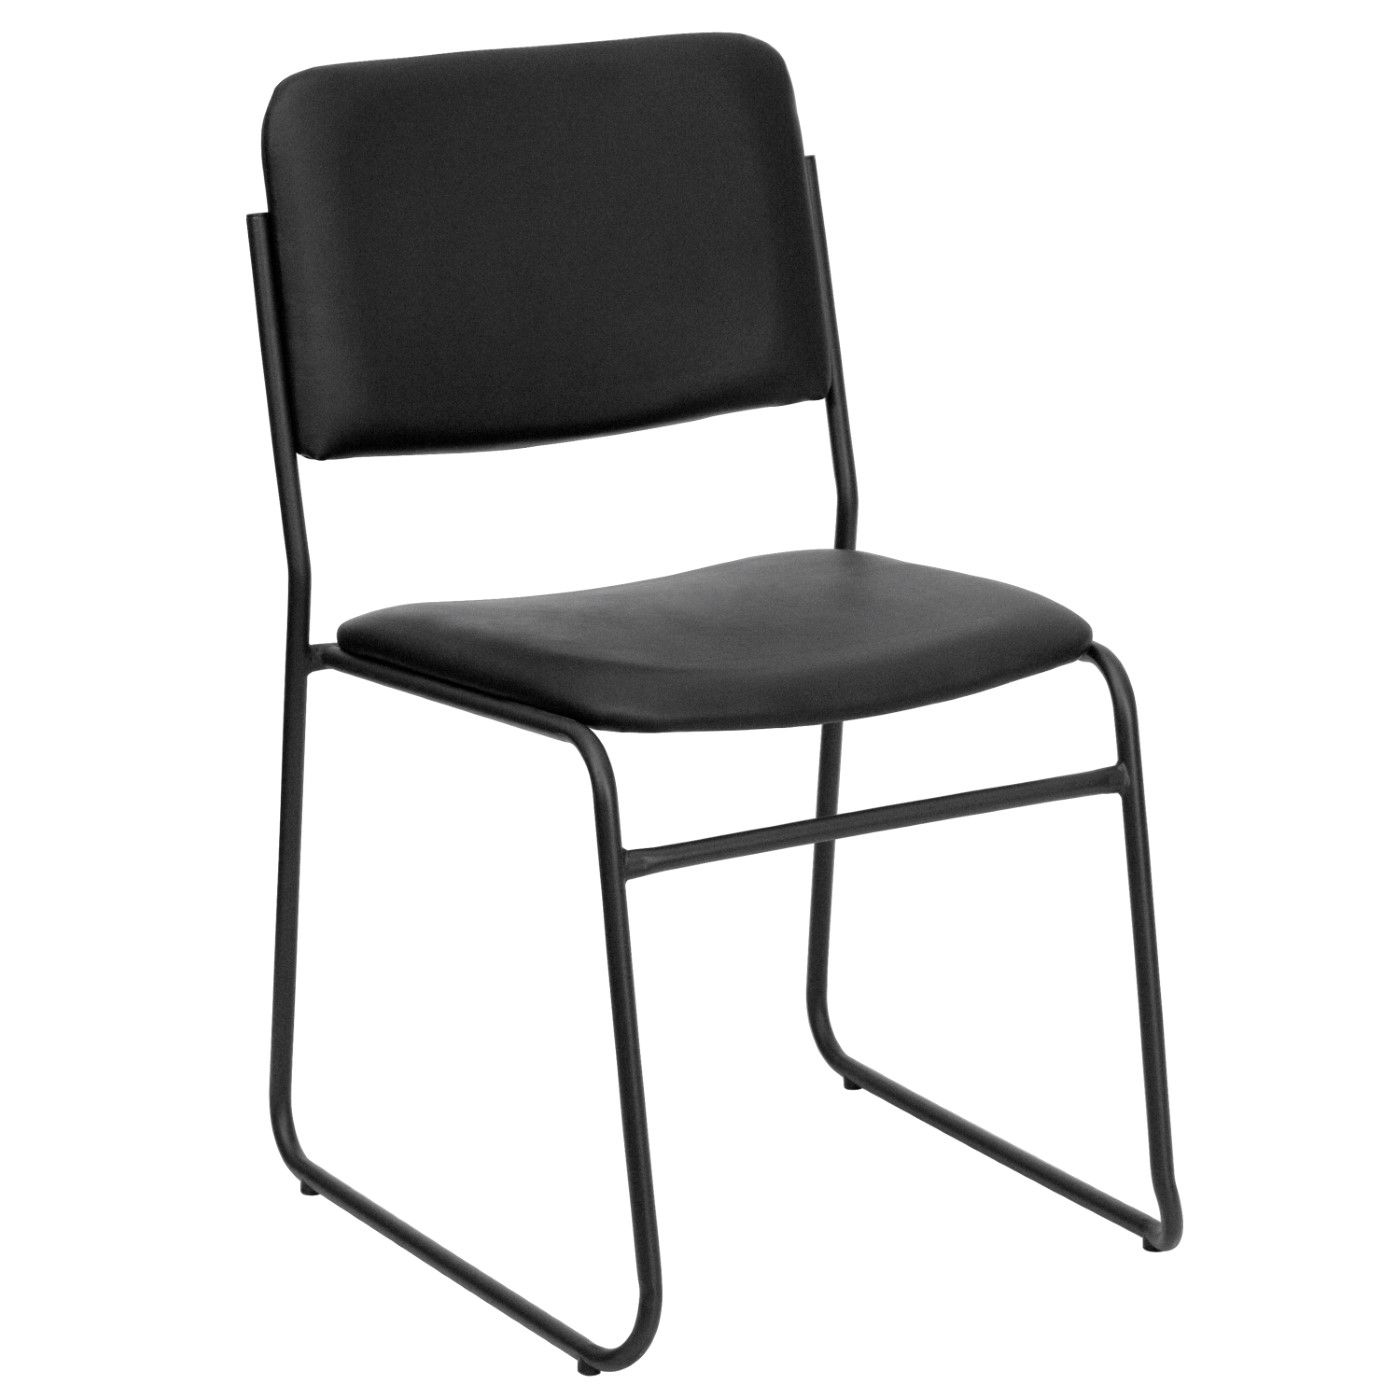 TOUGH ENOUGH Series 1000 lb. Capacity High Density Black Vinyl Stacking Chair with Sled Base